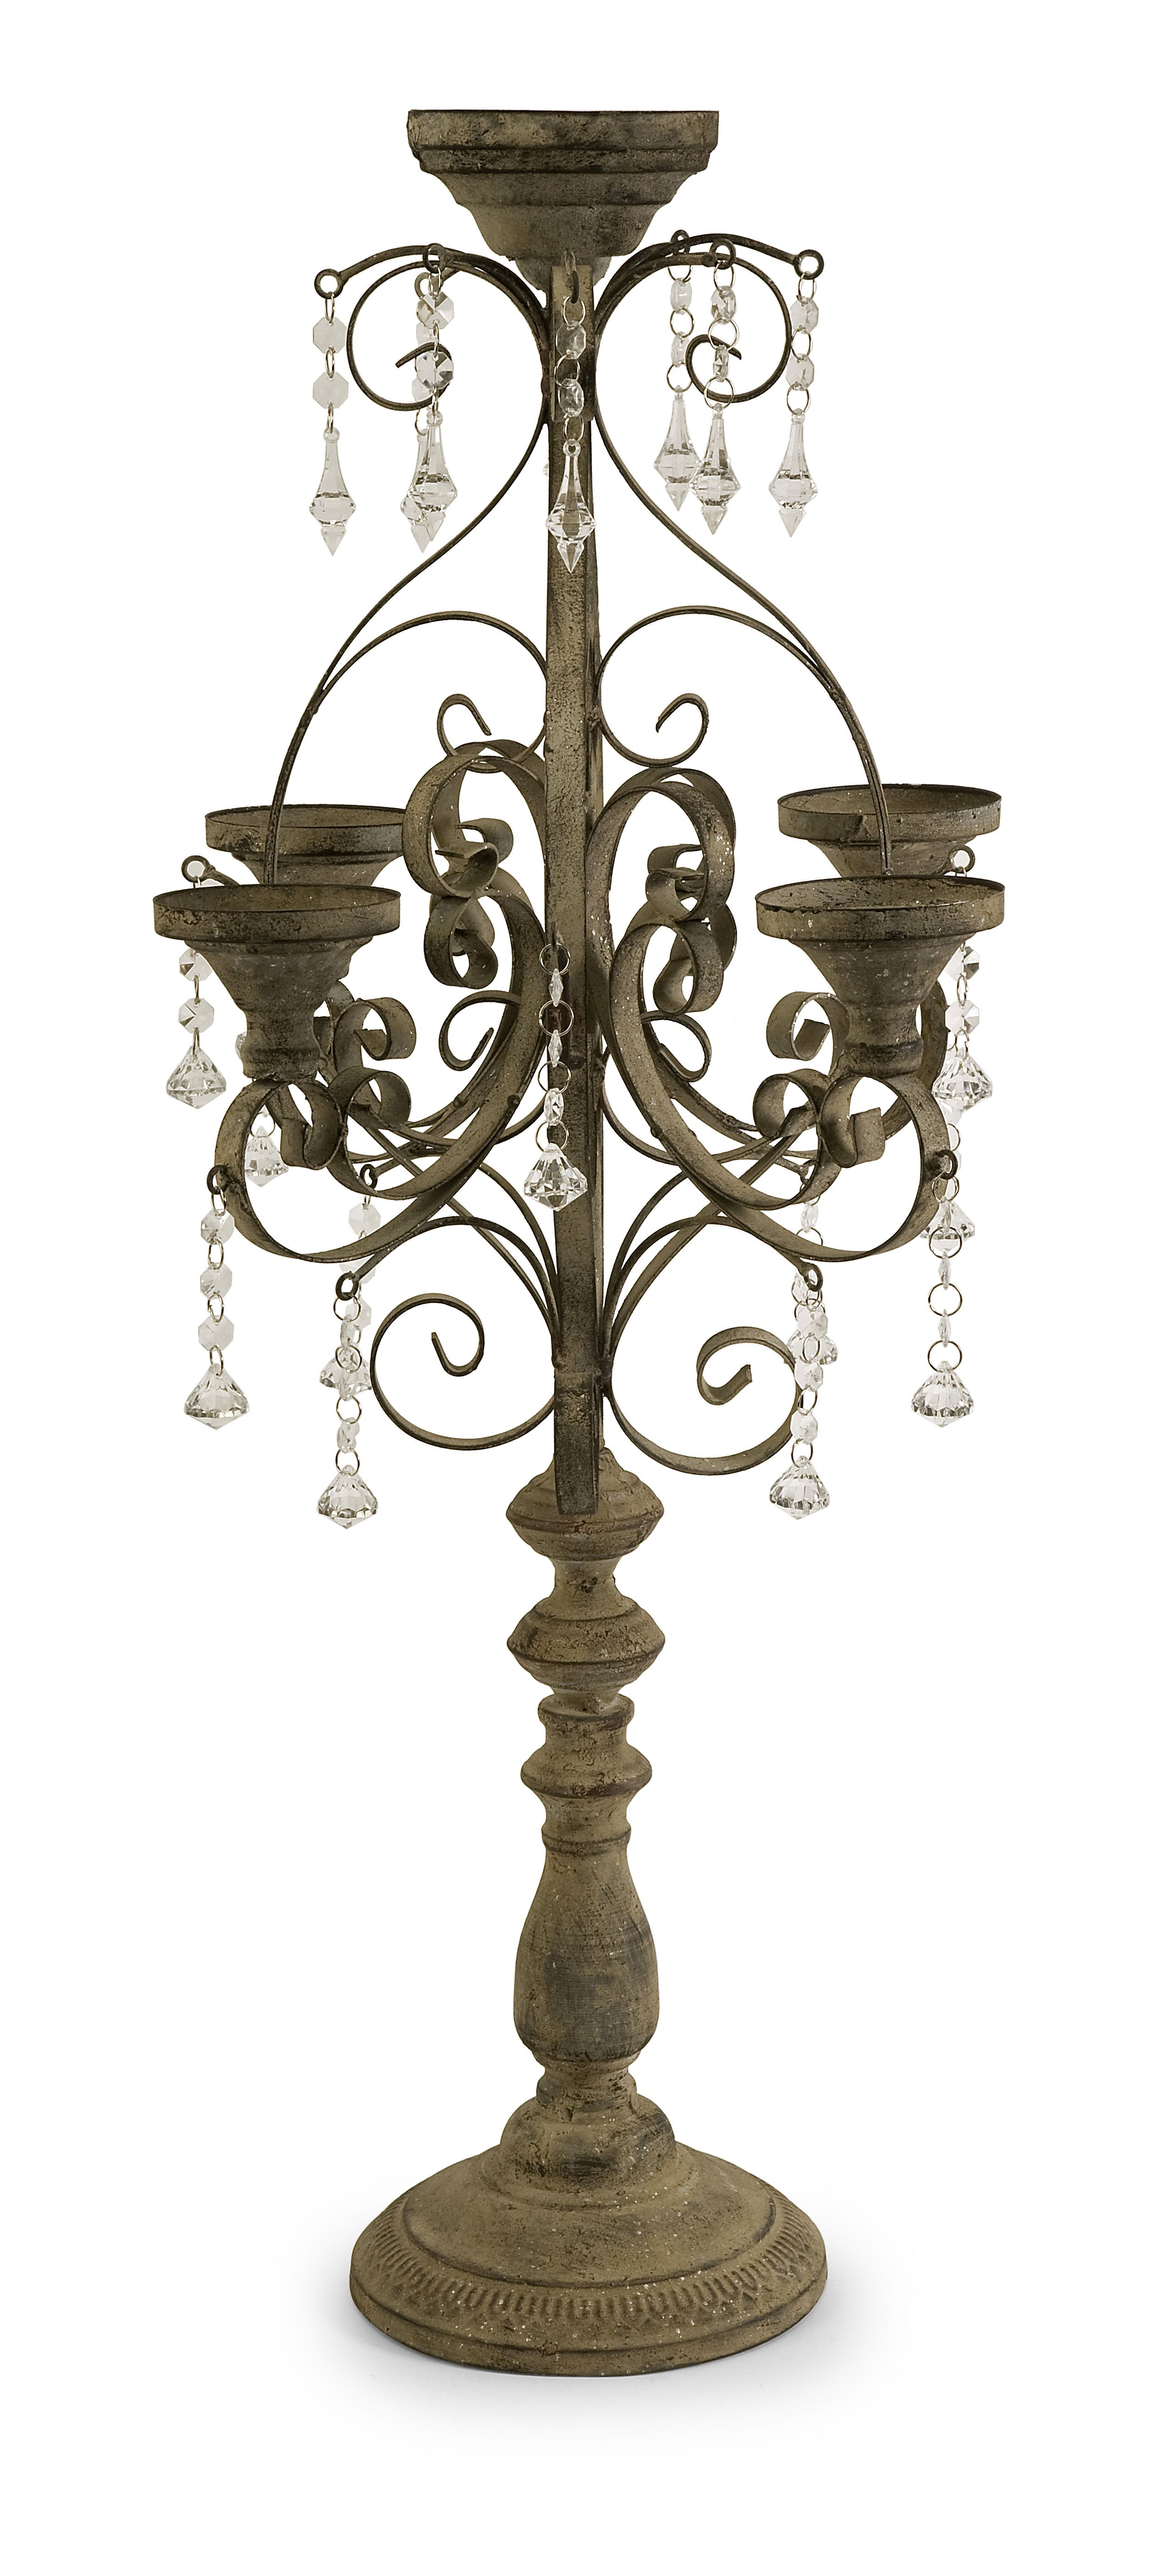 Tracy candle chandelier tabletop imax pinterest tabletop and tracy candle chandelier tabletop aloadofball Choice Image